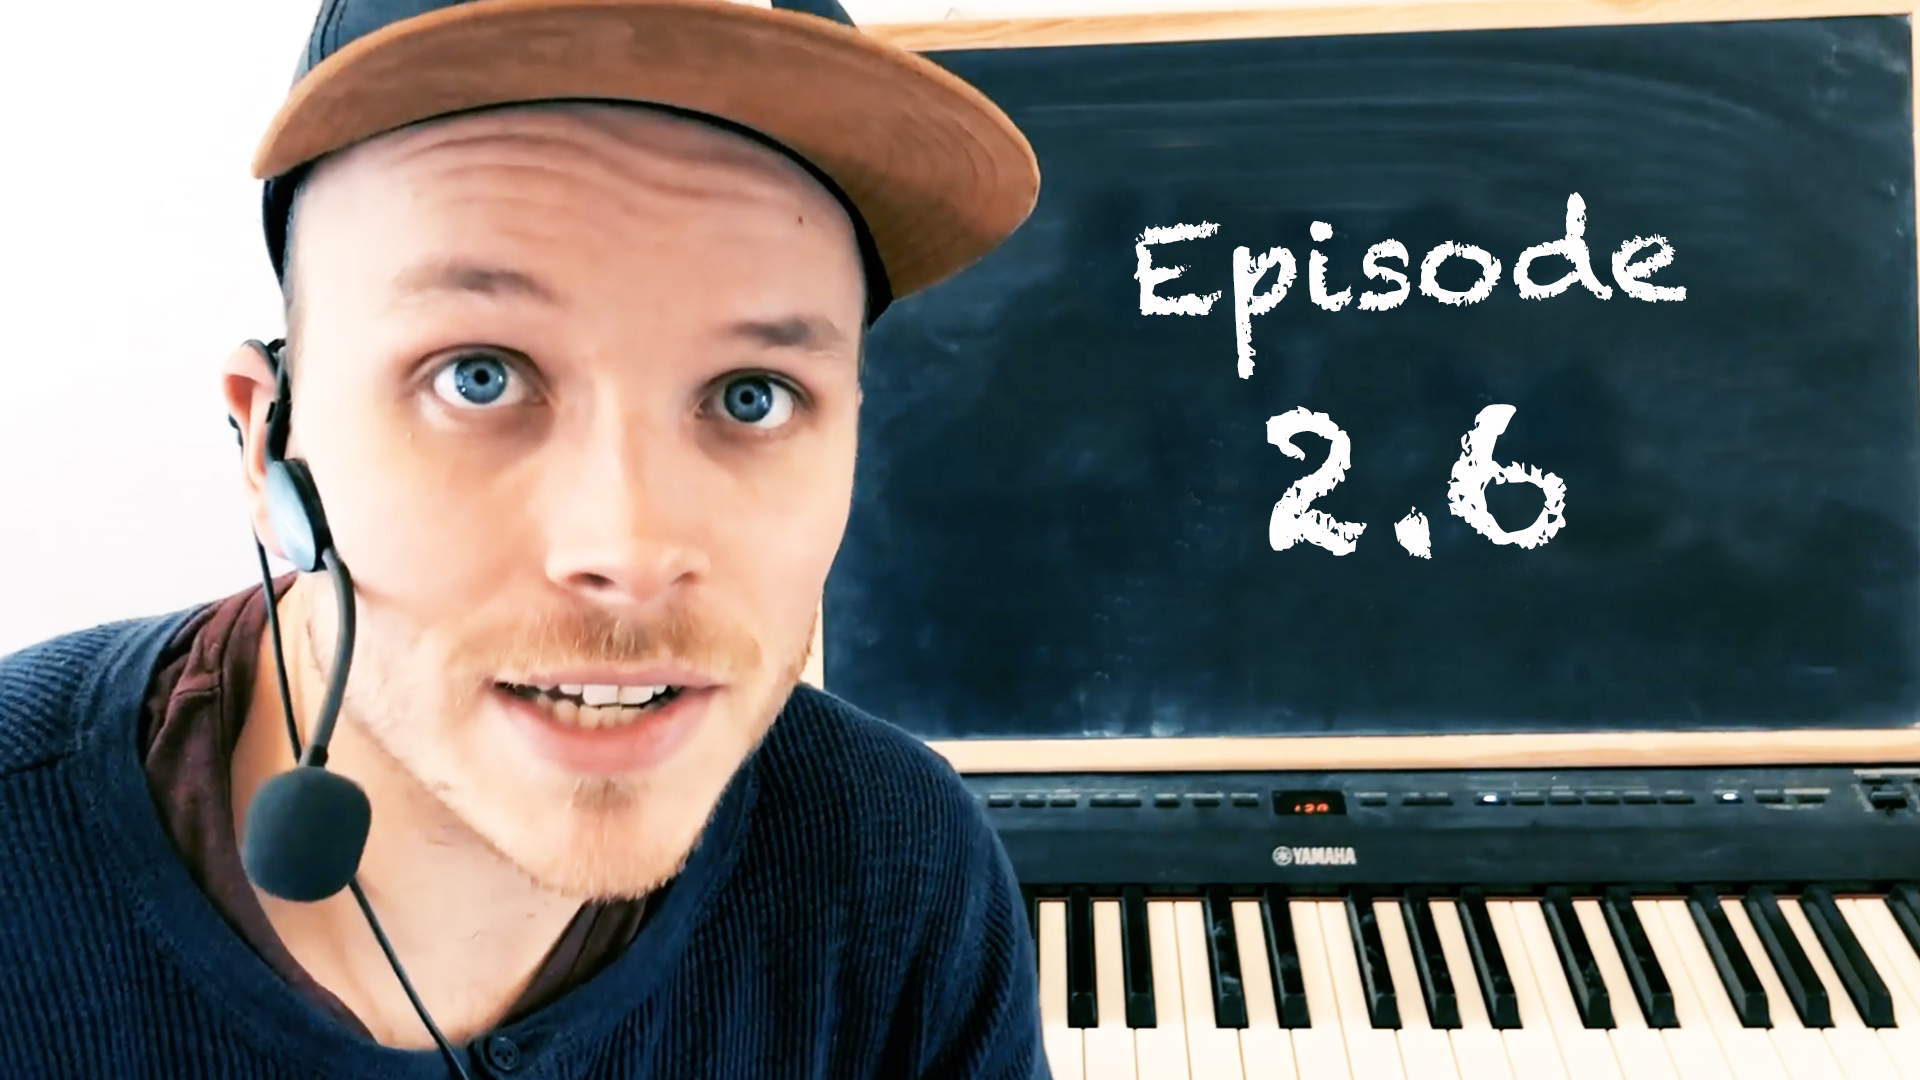 Ep 2. 6 Piano Improvising for Beginners